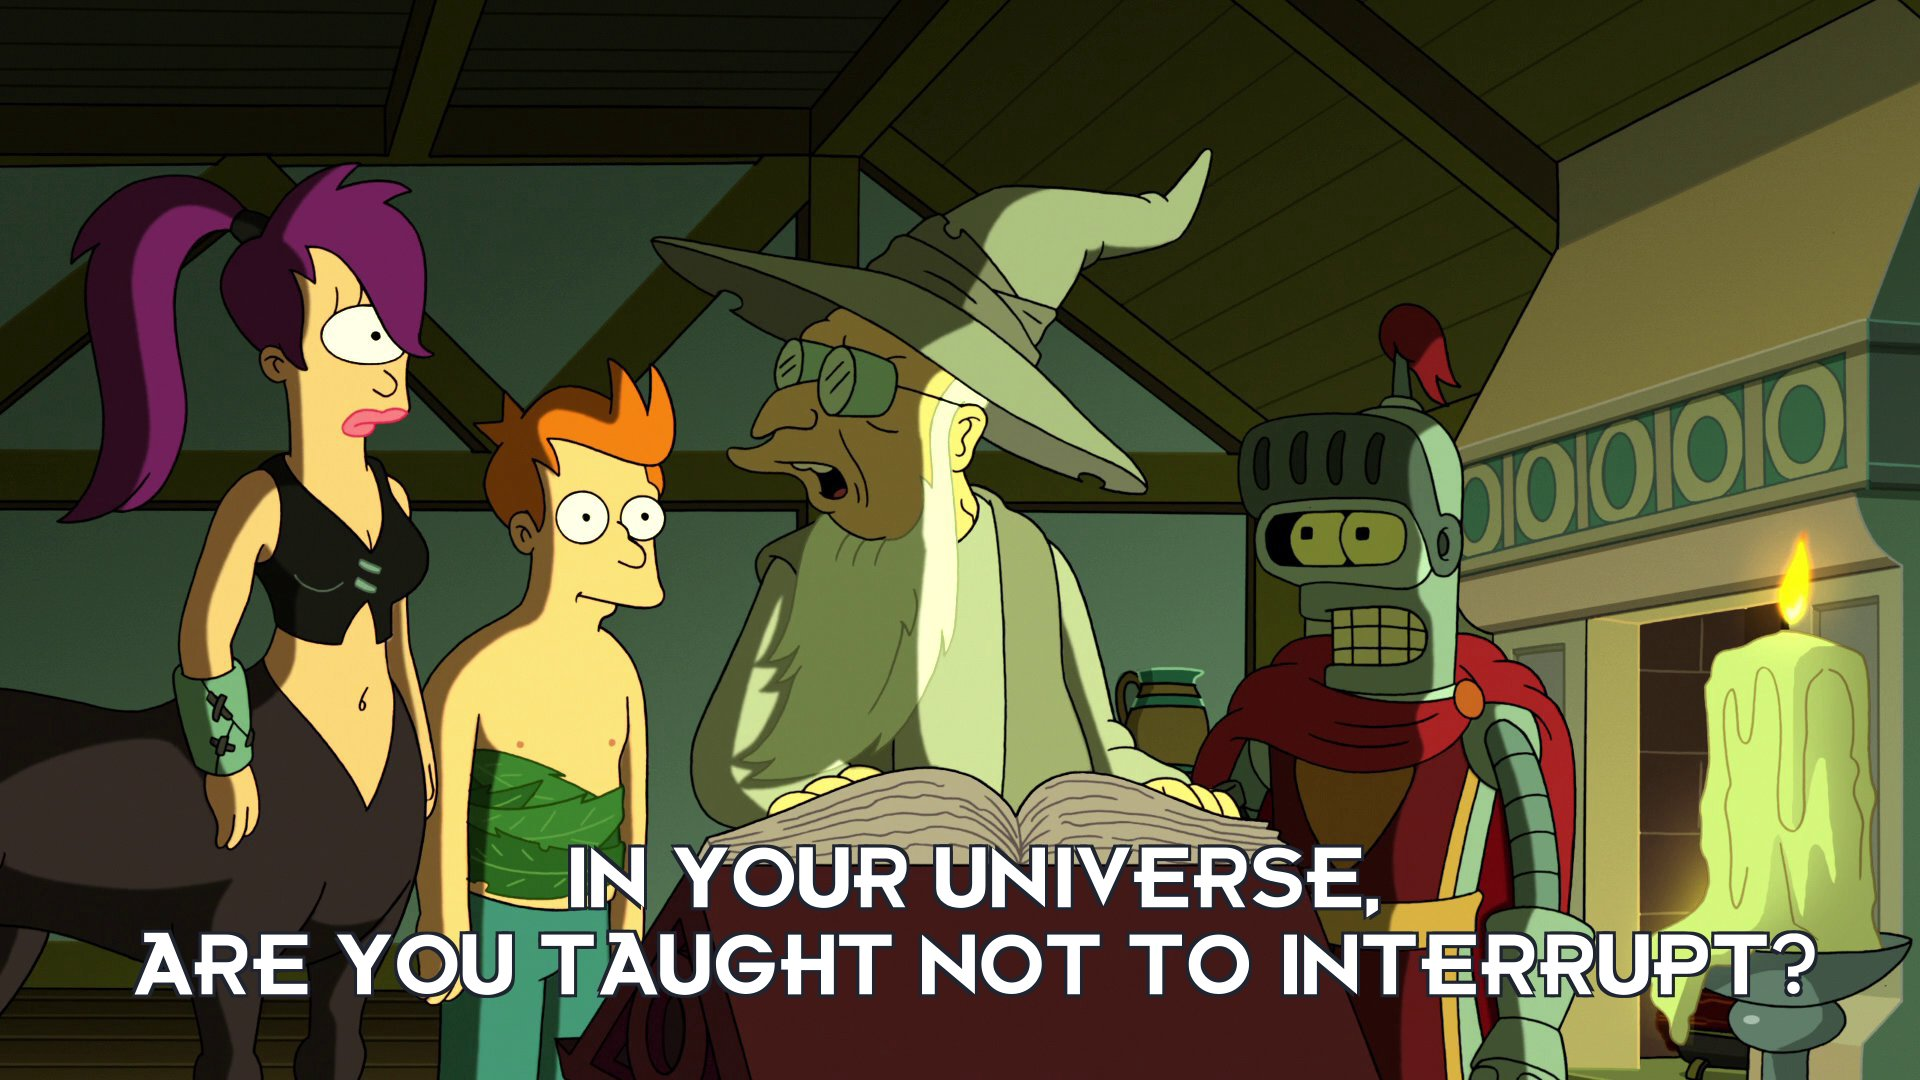 Greyfarn: In your universe, are you taught not to interrupt?